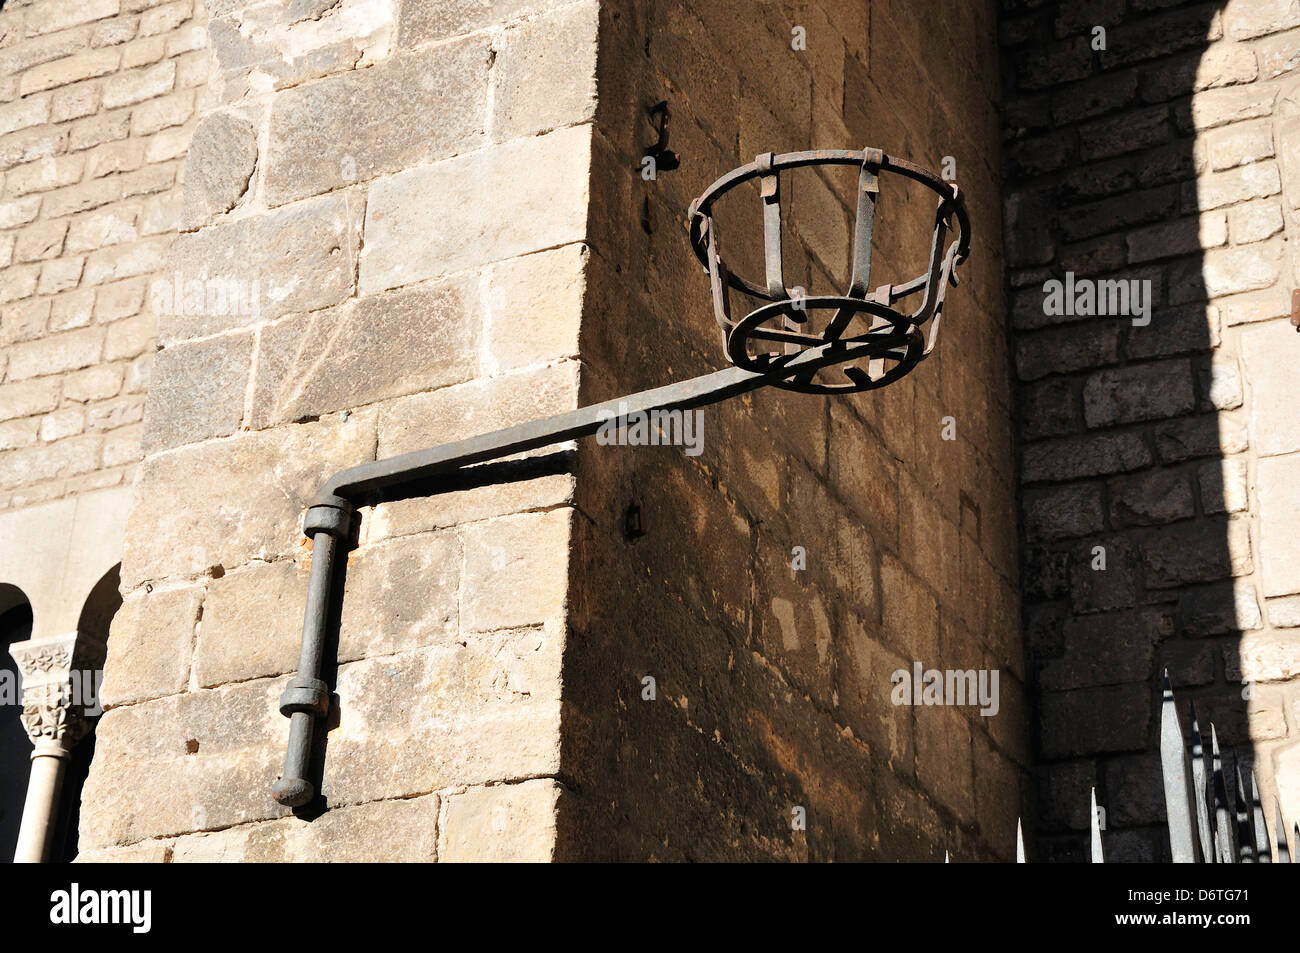 Barcelona, Catalonia, Spain. Medieval streetlamp (replica) in Placa del Rei - Stock Image